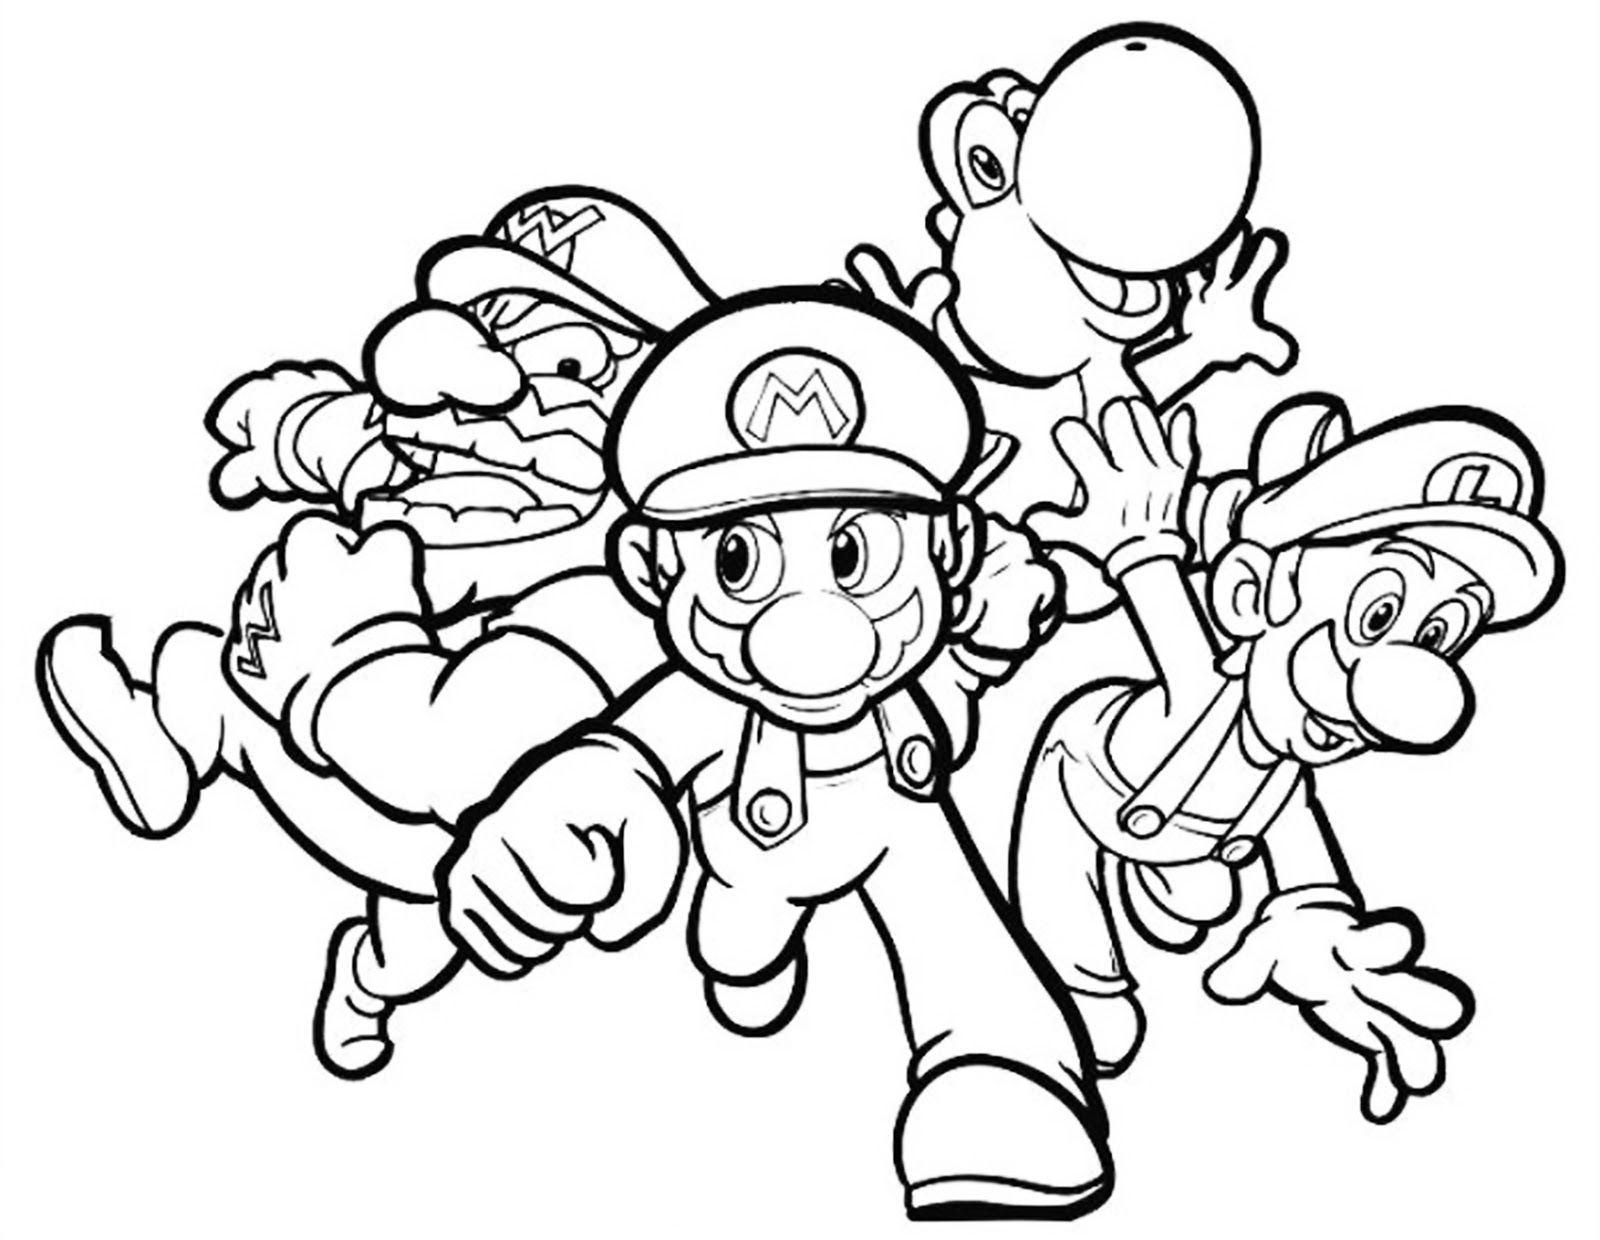 A4 colouring in pages more adult video game colouring pages for you to print and